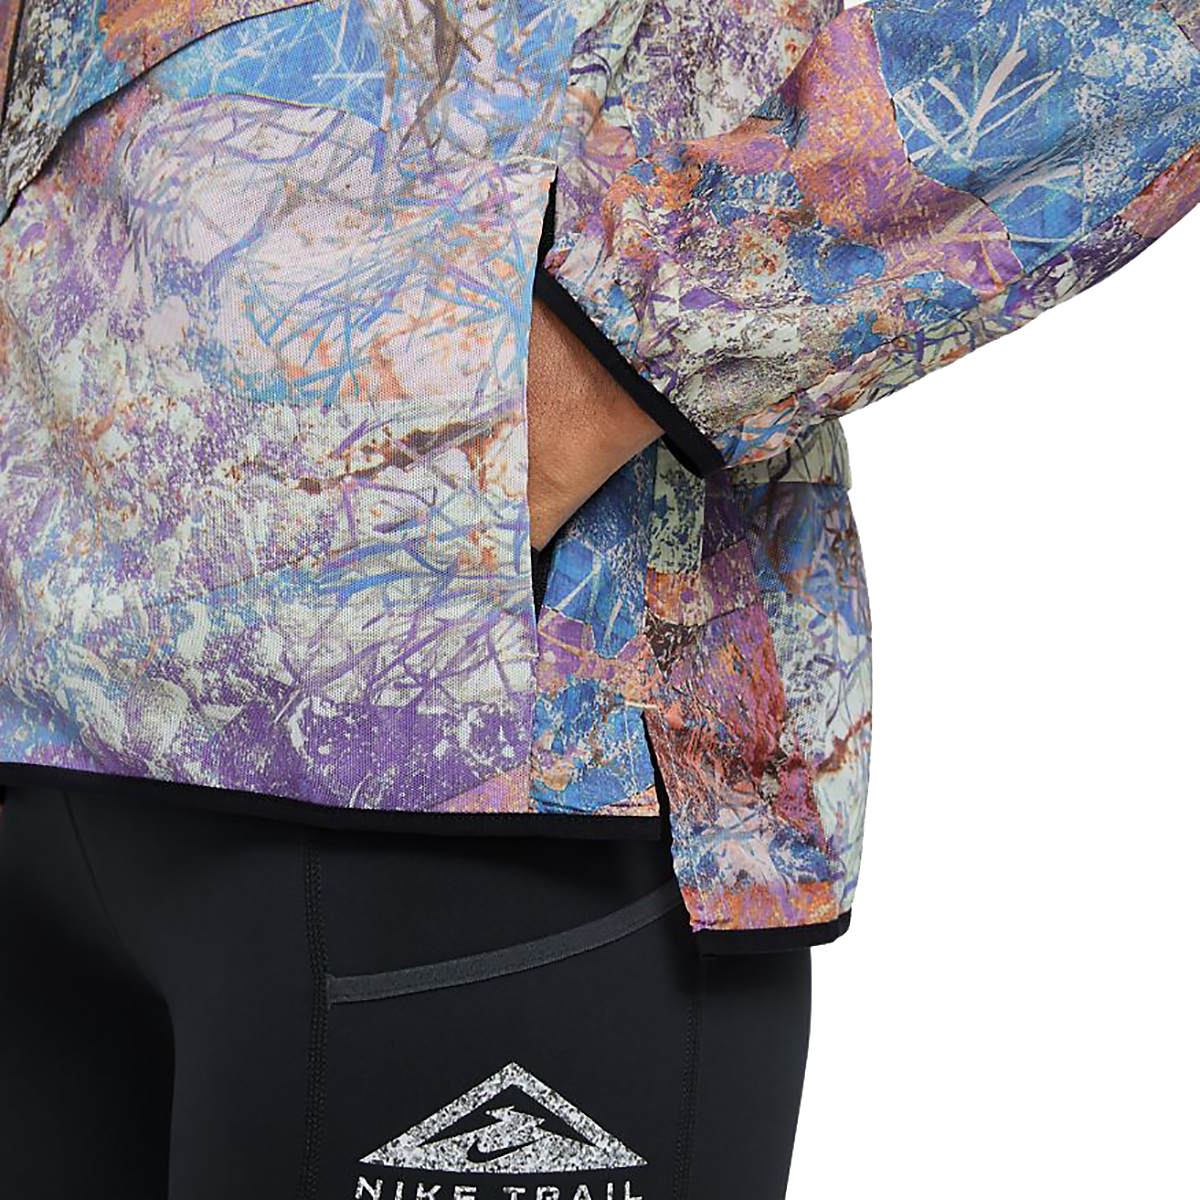 Women's Nike Windrunner Packable Trail Running Jacket - Color: Blue Lagoon/Black/Reflective Silver - Size: XS, Blue Lagoon/Black/Reflective Silver, large, image 3